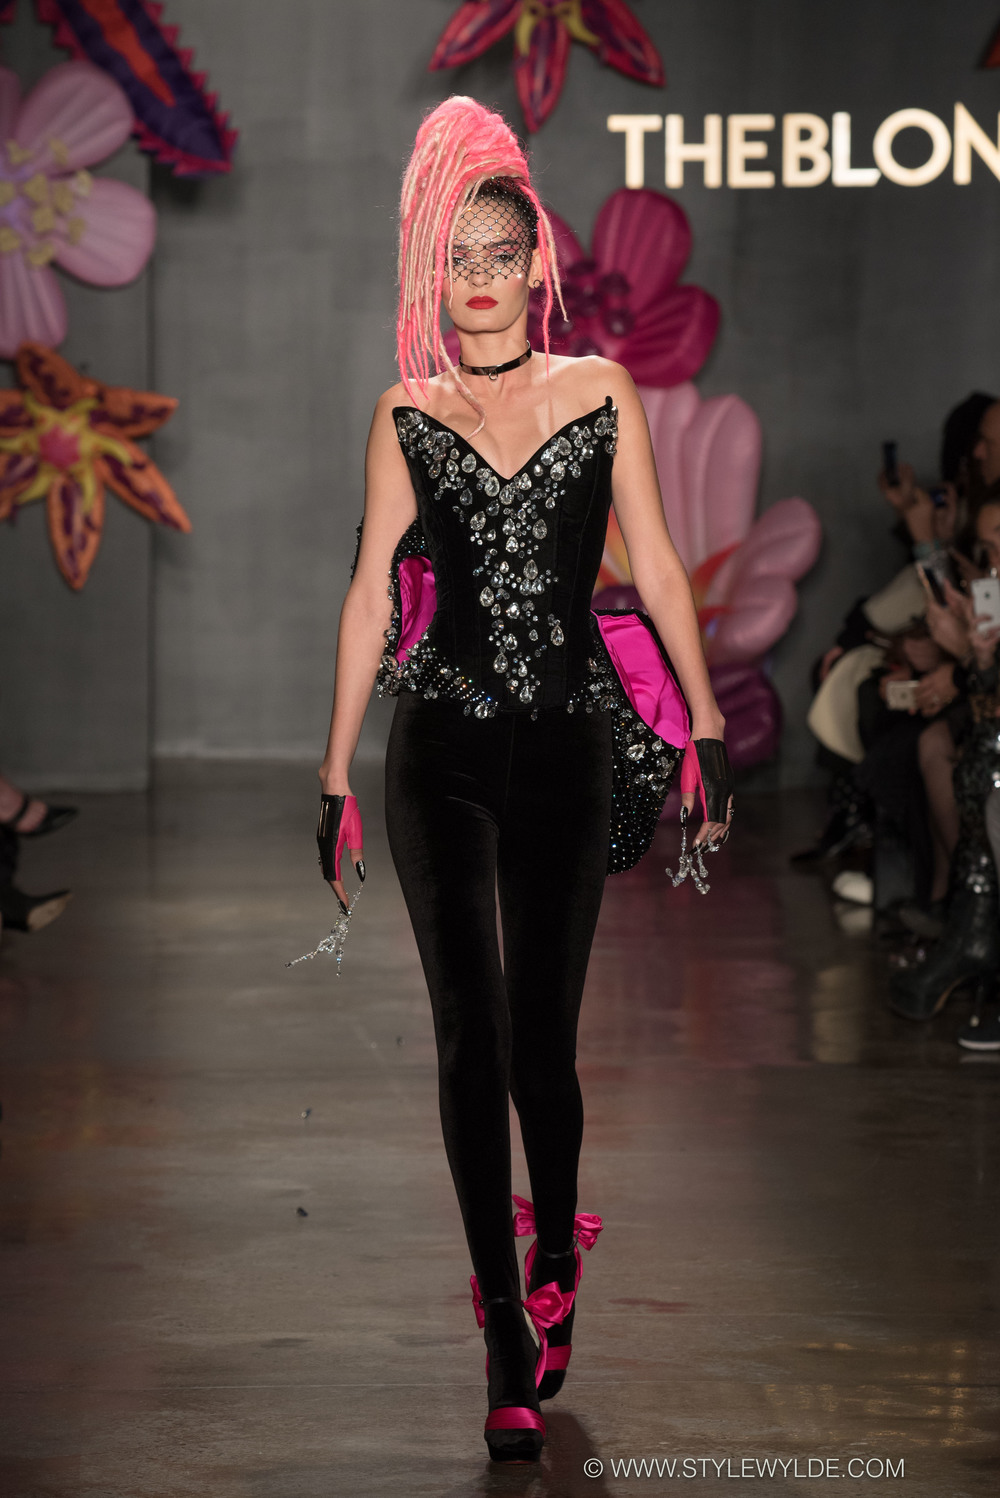 StyleWylde - The blonds- AW16-12.jpg